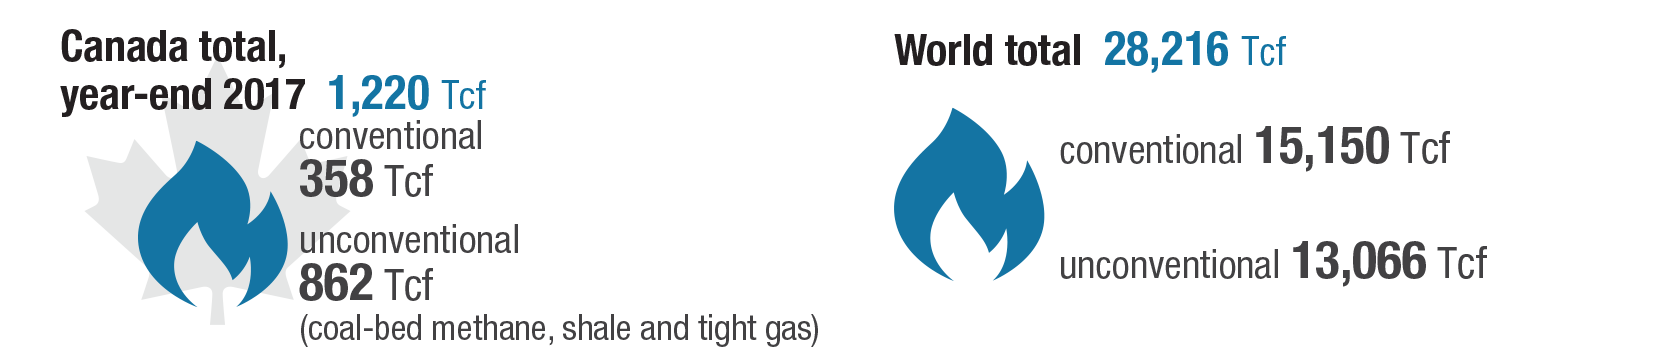 Natural Gas Facts | Natural Resources Canada